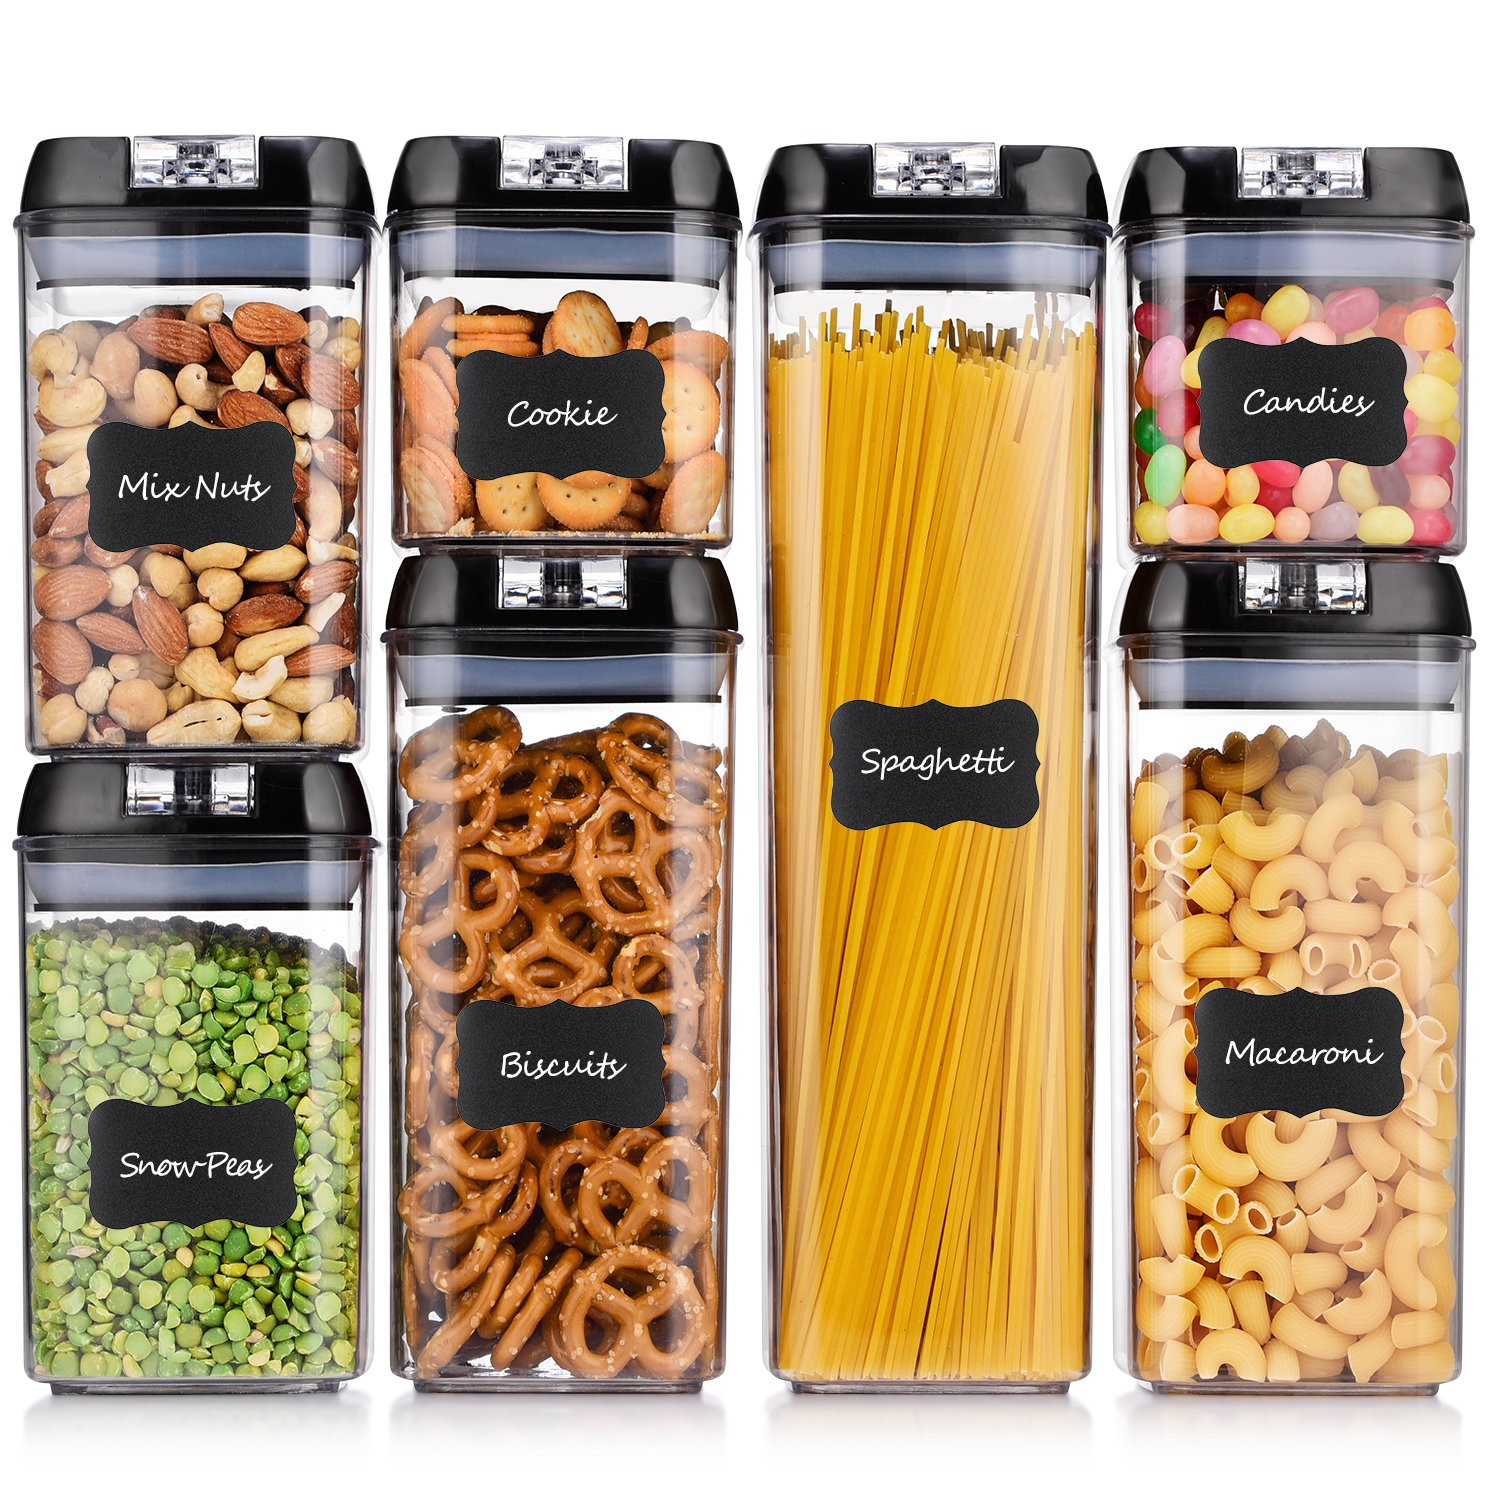 ME.FAN Airtight Food Storage Container Set [7-Piece Set] Durable Seal Pot- Cereal Storage Containers - FREE 24 Chalkboard Label - Kitchen Cabinet Organization - BPA Free - Clear Plastic with Black Lid